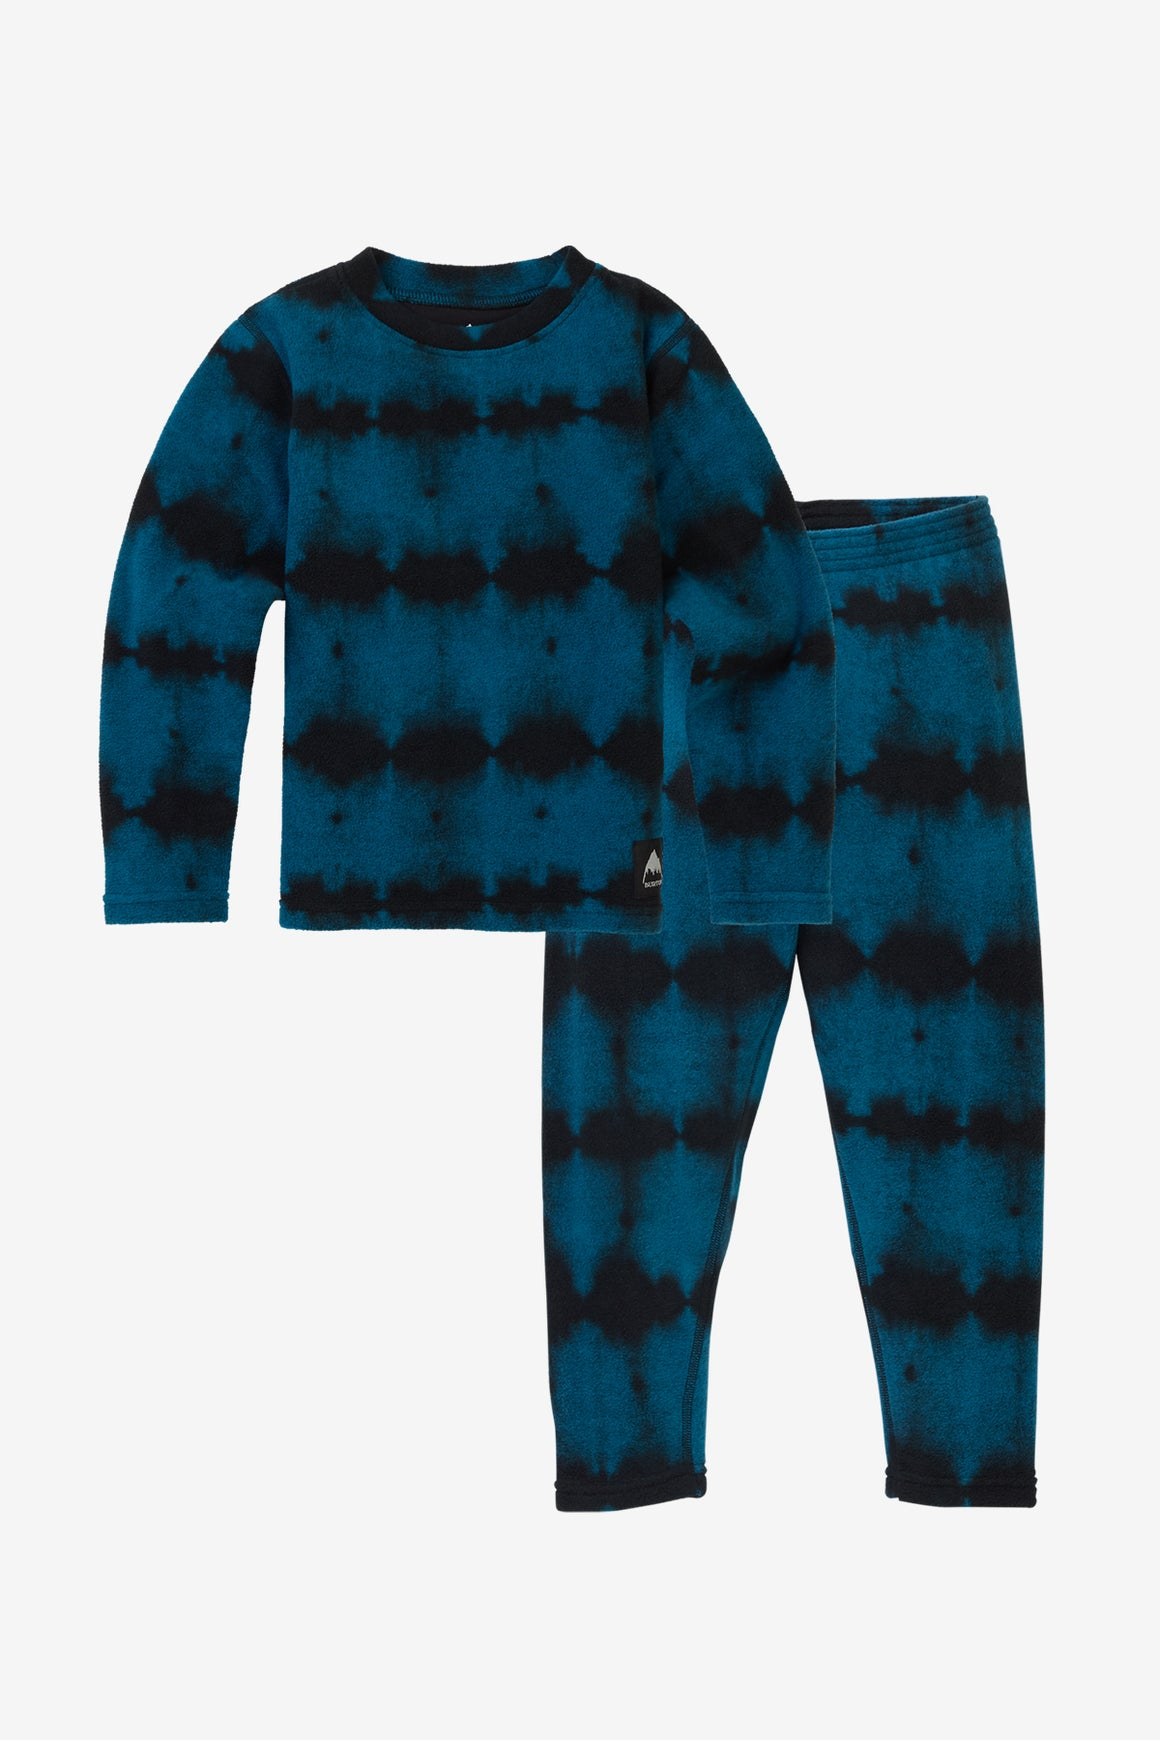 Burton Boys Fleece Set - Blowout